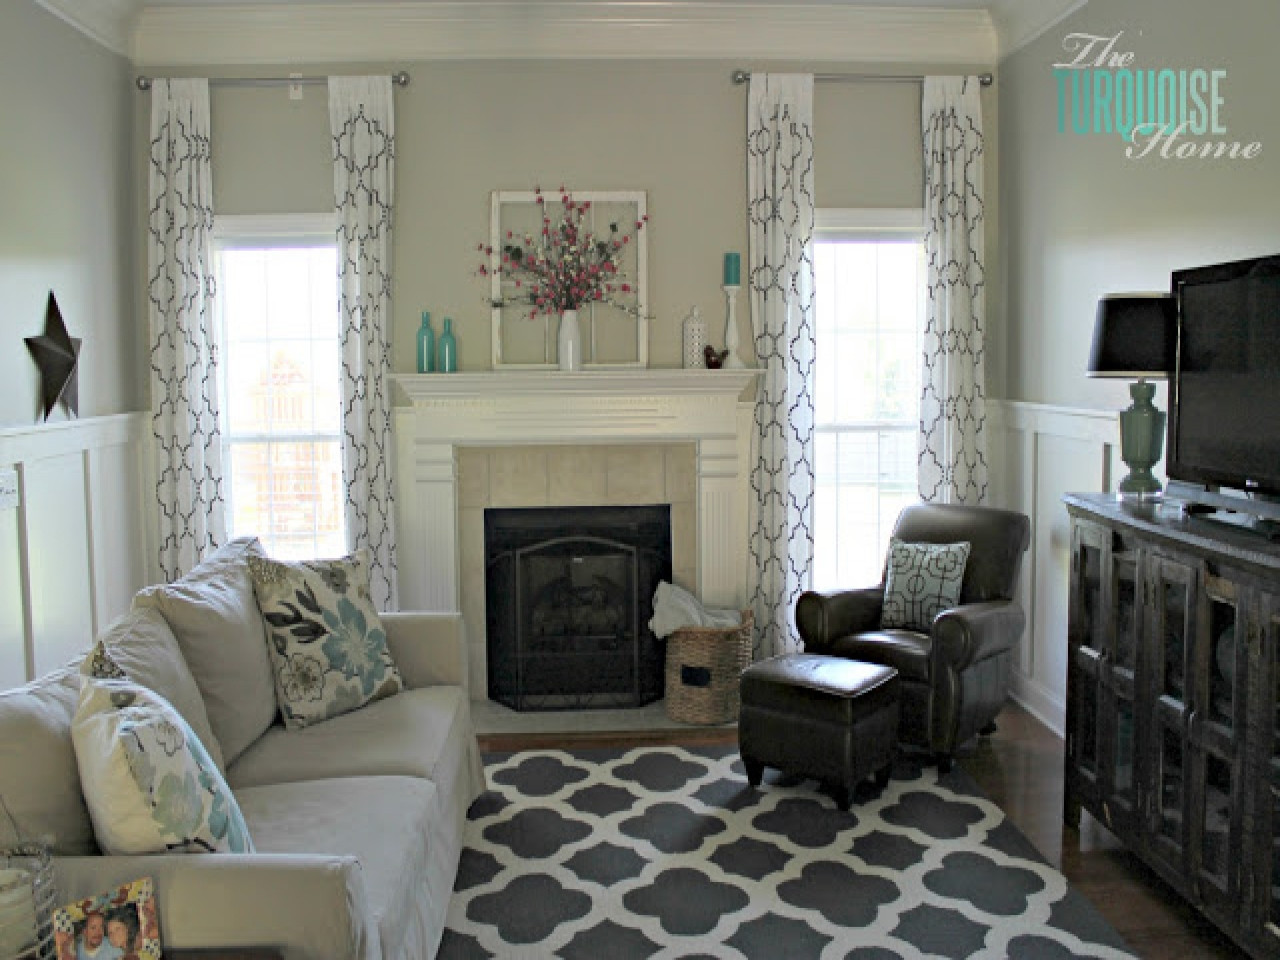 Best ideas about Revere Pewter Living Room . Save or Pin Purple and gray bedrooms benjamin moore revere pewter Now.